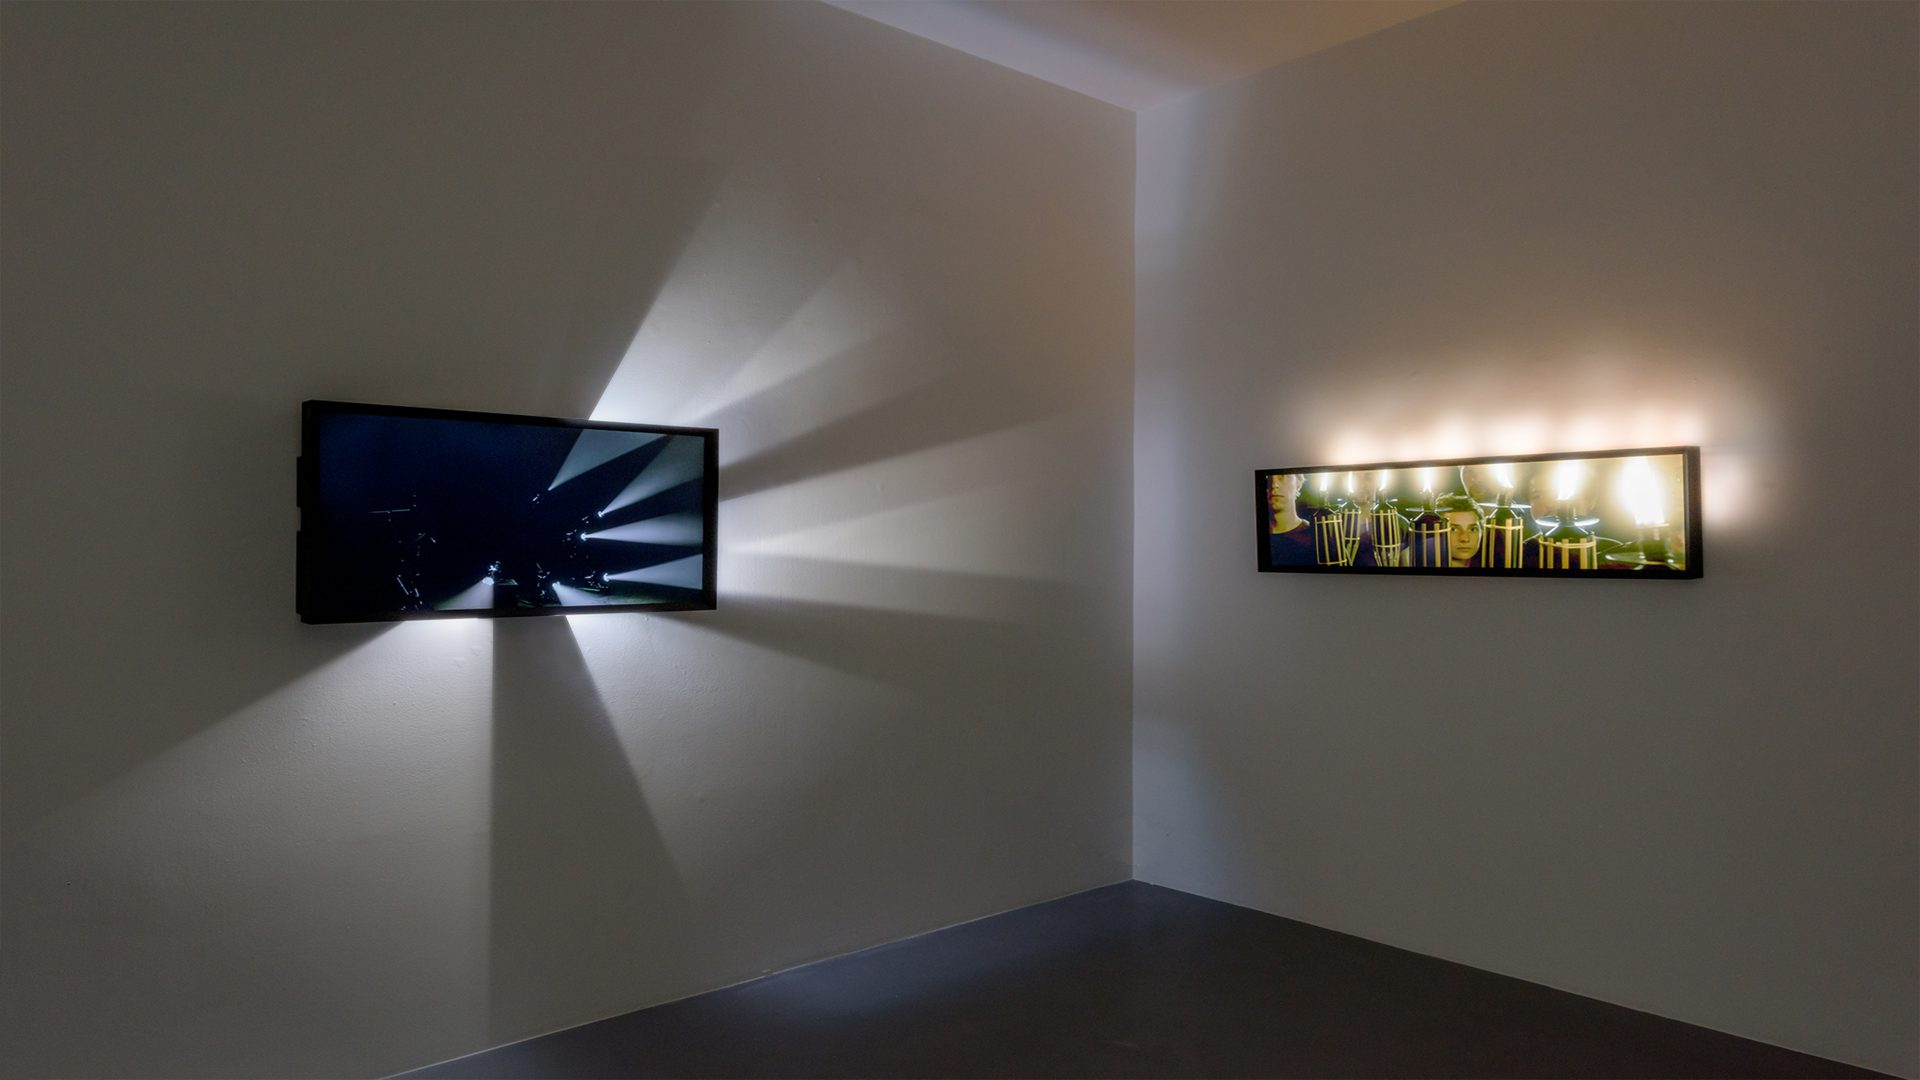 L'image éclaire - Light beams and Torch screens - Michel Rein Gallery Paris, 2016 / Credits : Florian Kleinefenn